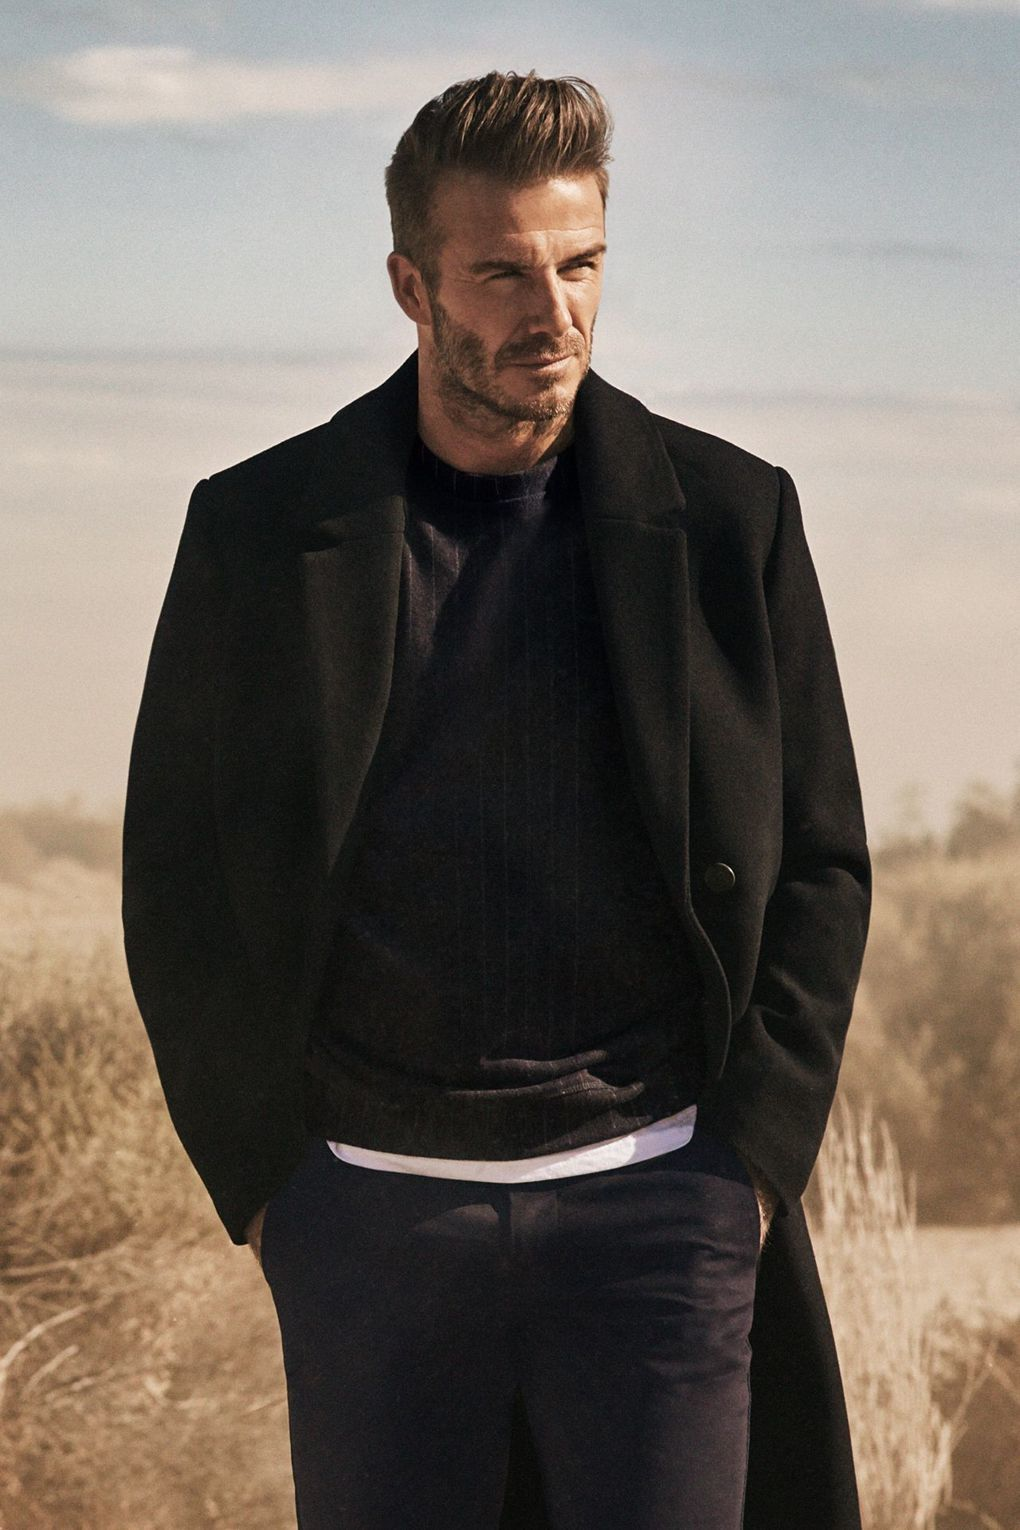 Black t shirt with suit - Nordstrom 69 Shop Navy Chinos David Beckham Wearing Black Overcoat Black Crew Neck Sweater White Crew Neck